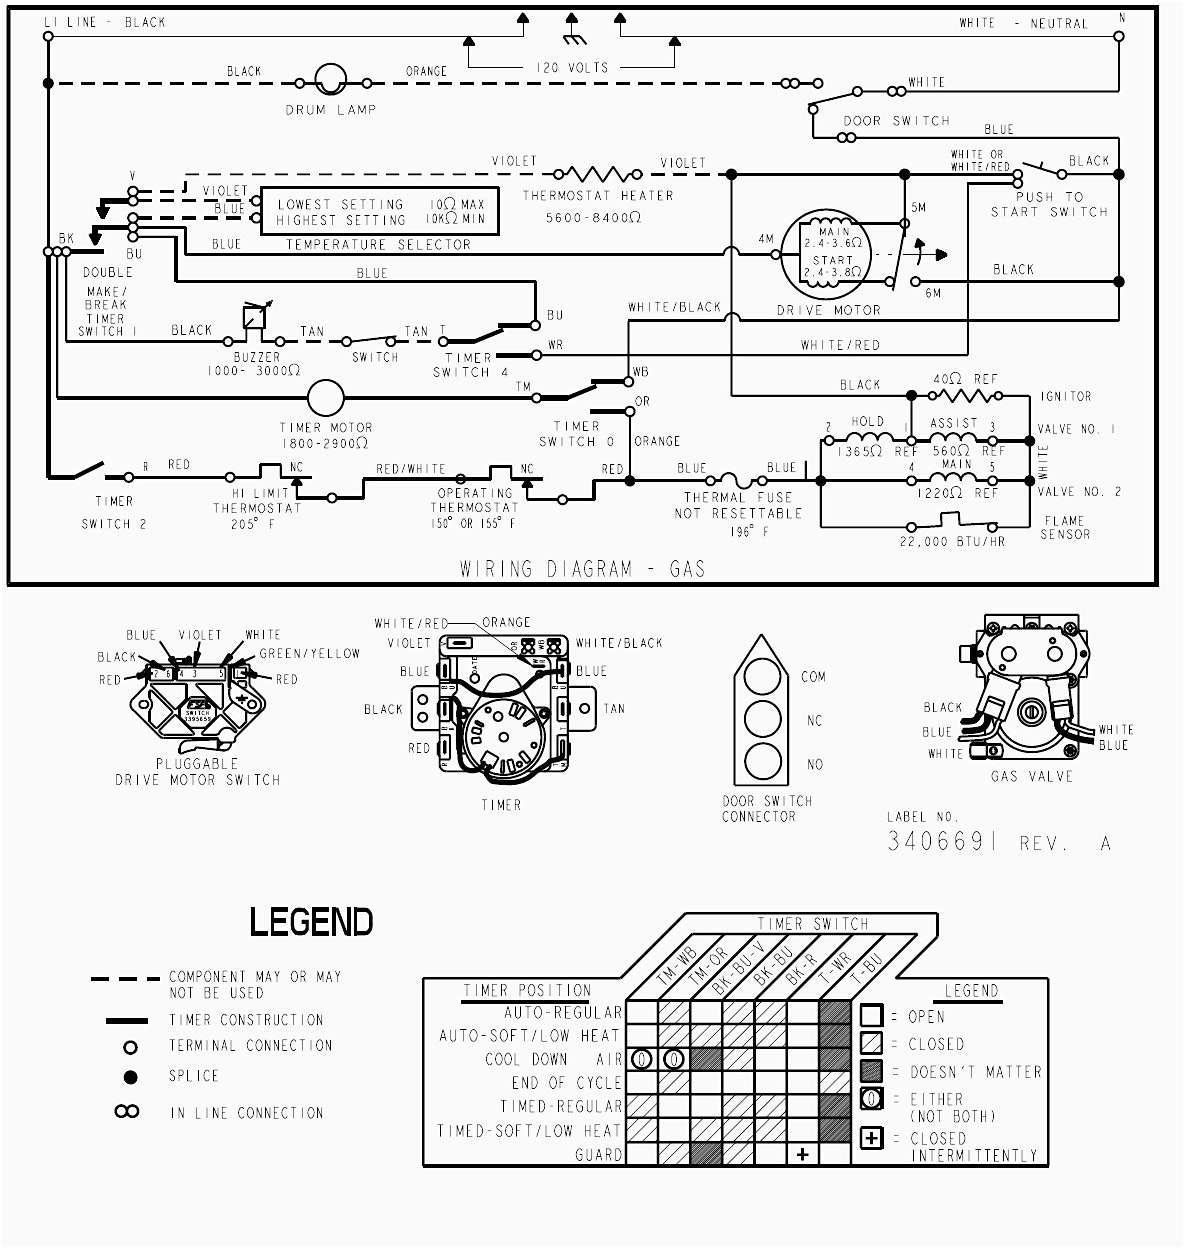 hight resolution of whirlpool electric dryer wiring diagram download whirlpool dryer wiring diagram electric parts fine ansis me download wiring diagram